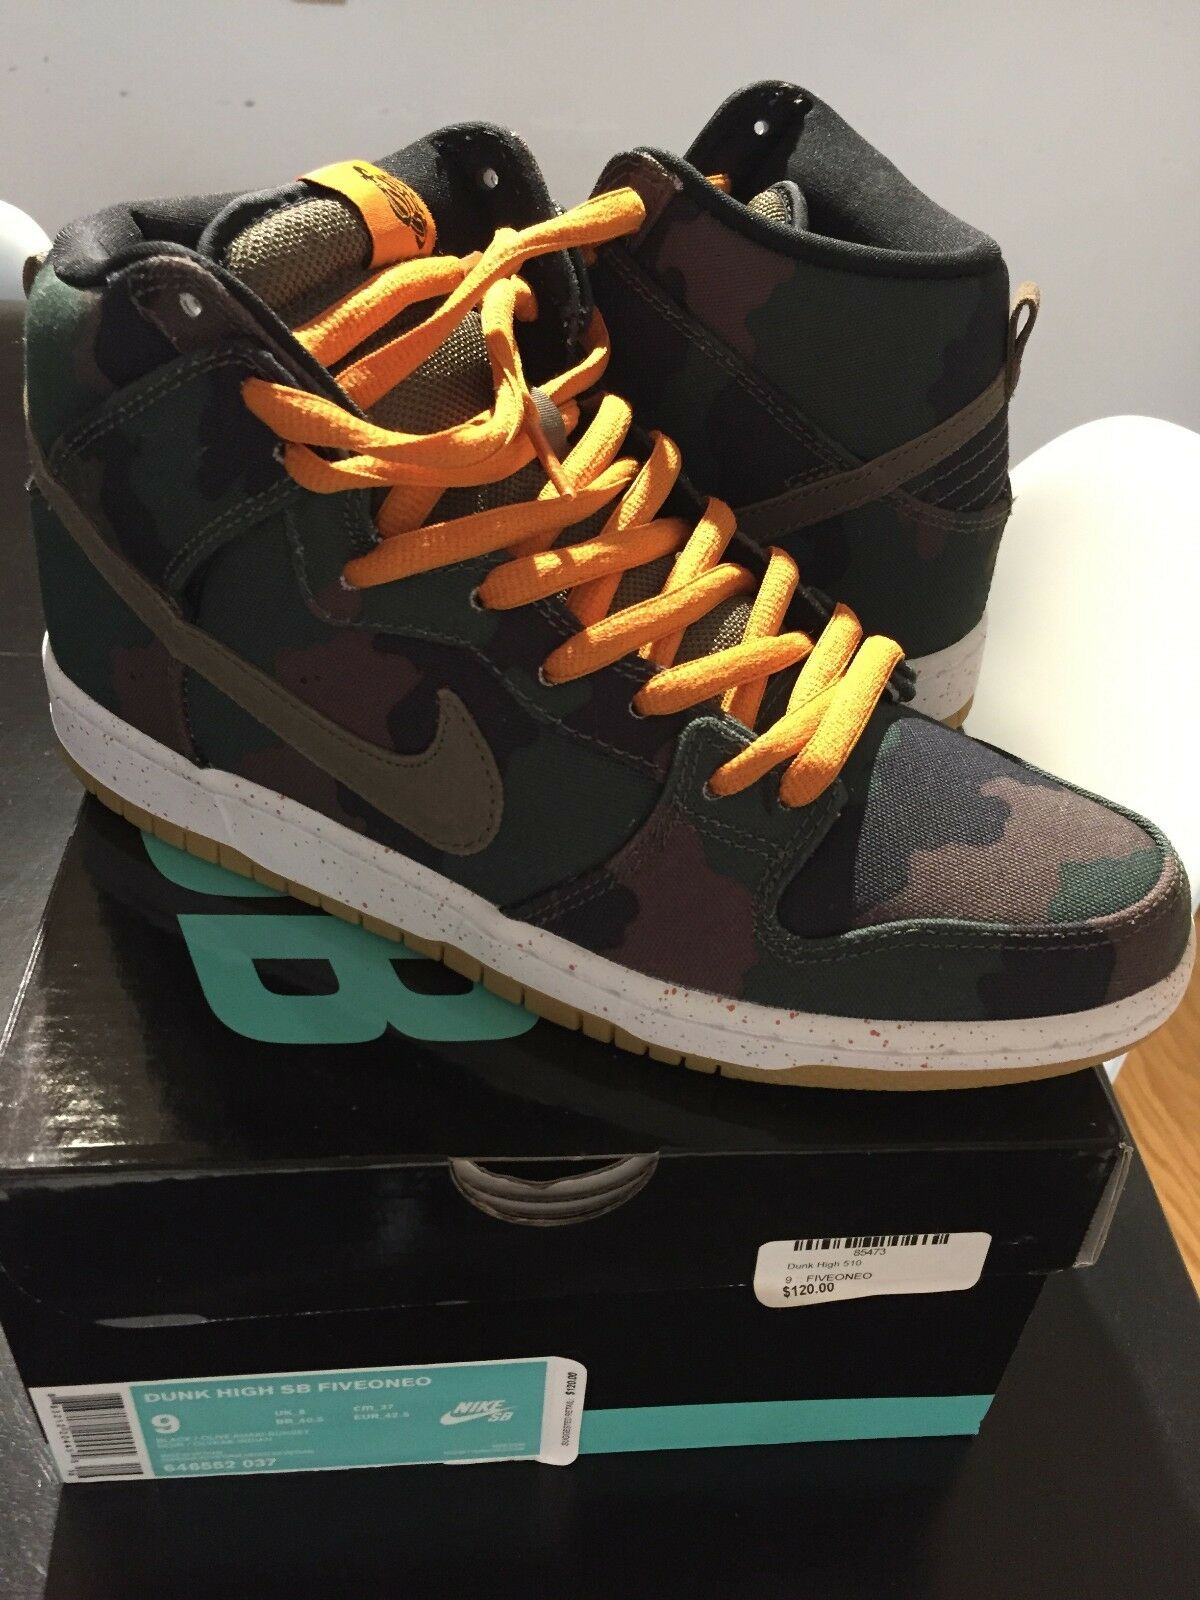 NIKE DUNK HIGH SB FIVEONEO 510 CAMO MENS SIZE 9 DS BIN